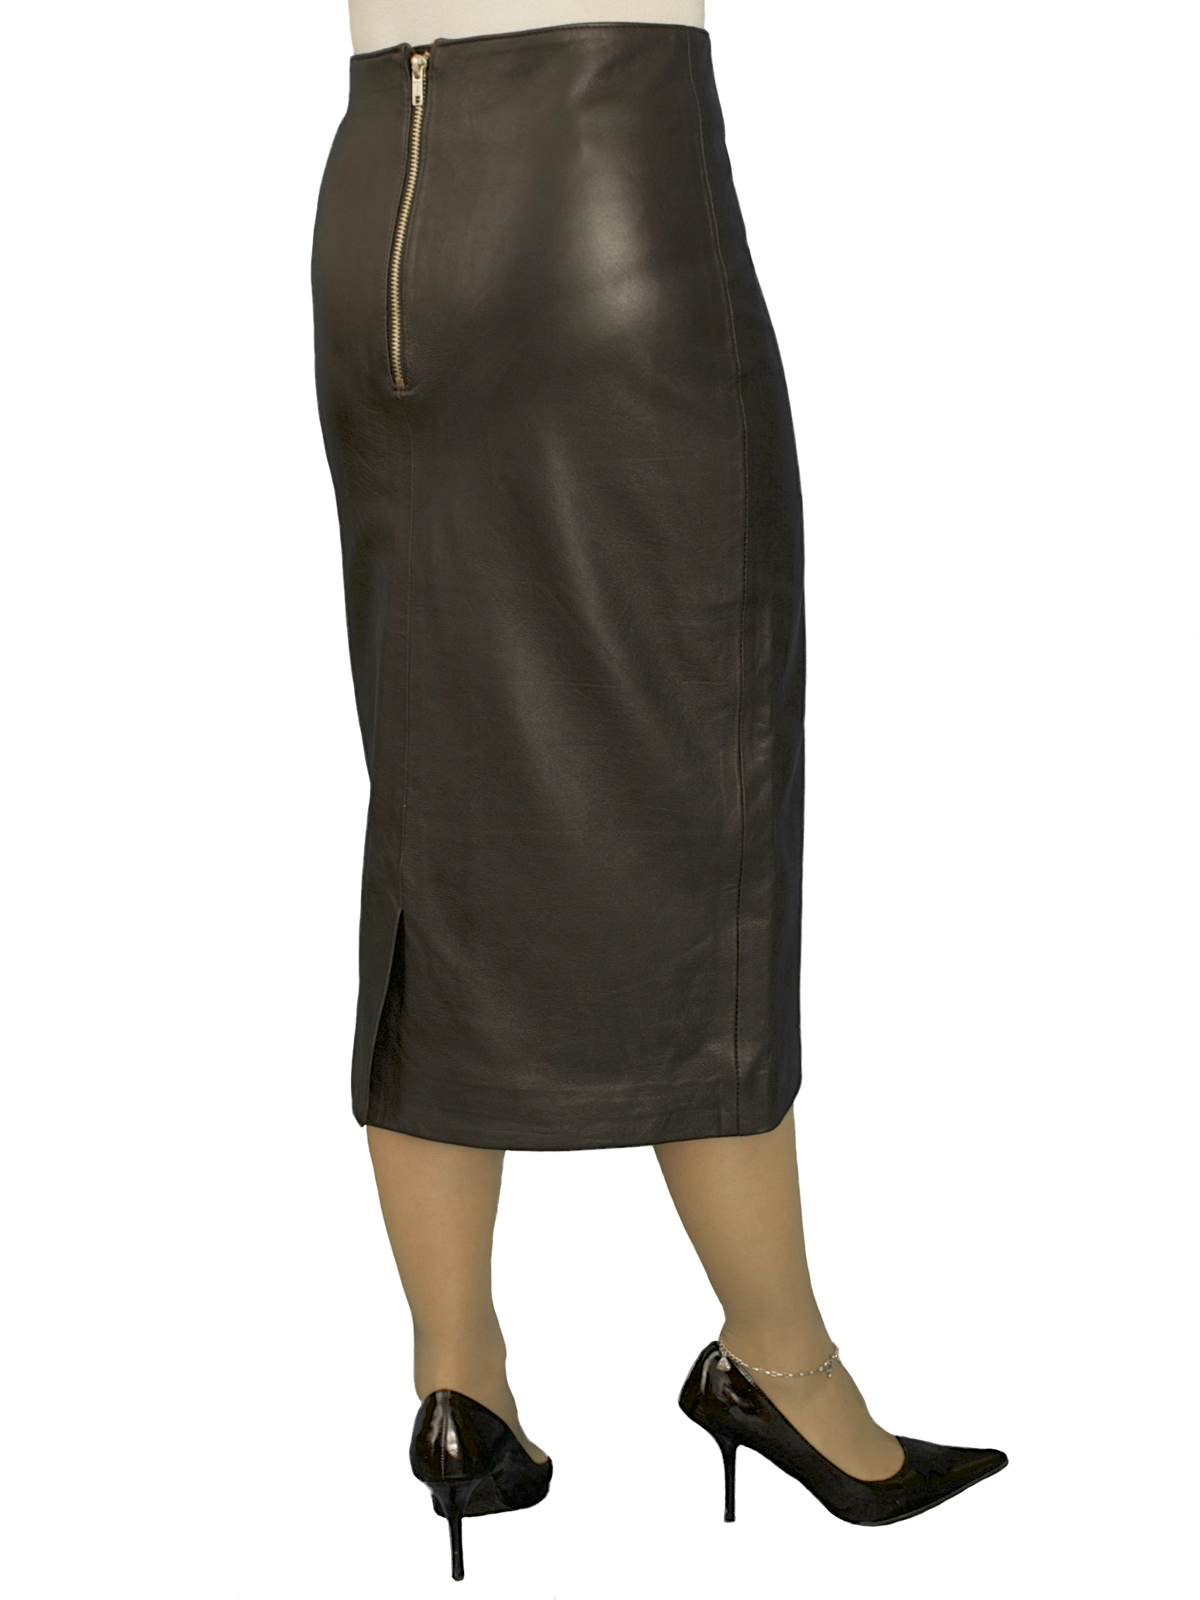 Luxury Black Leather Midi Pencil Skirt (27in length), kick pleat